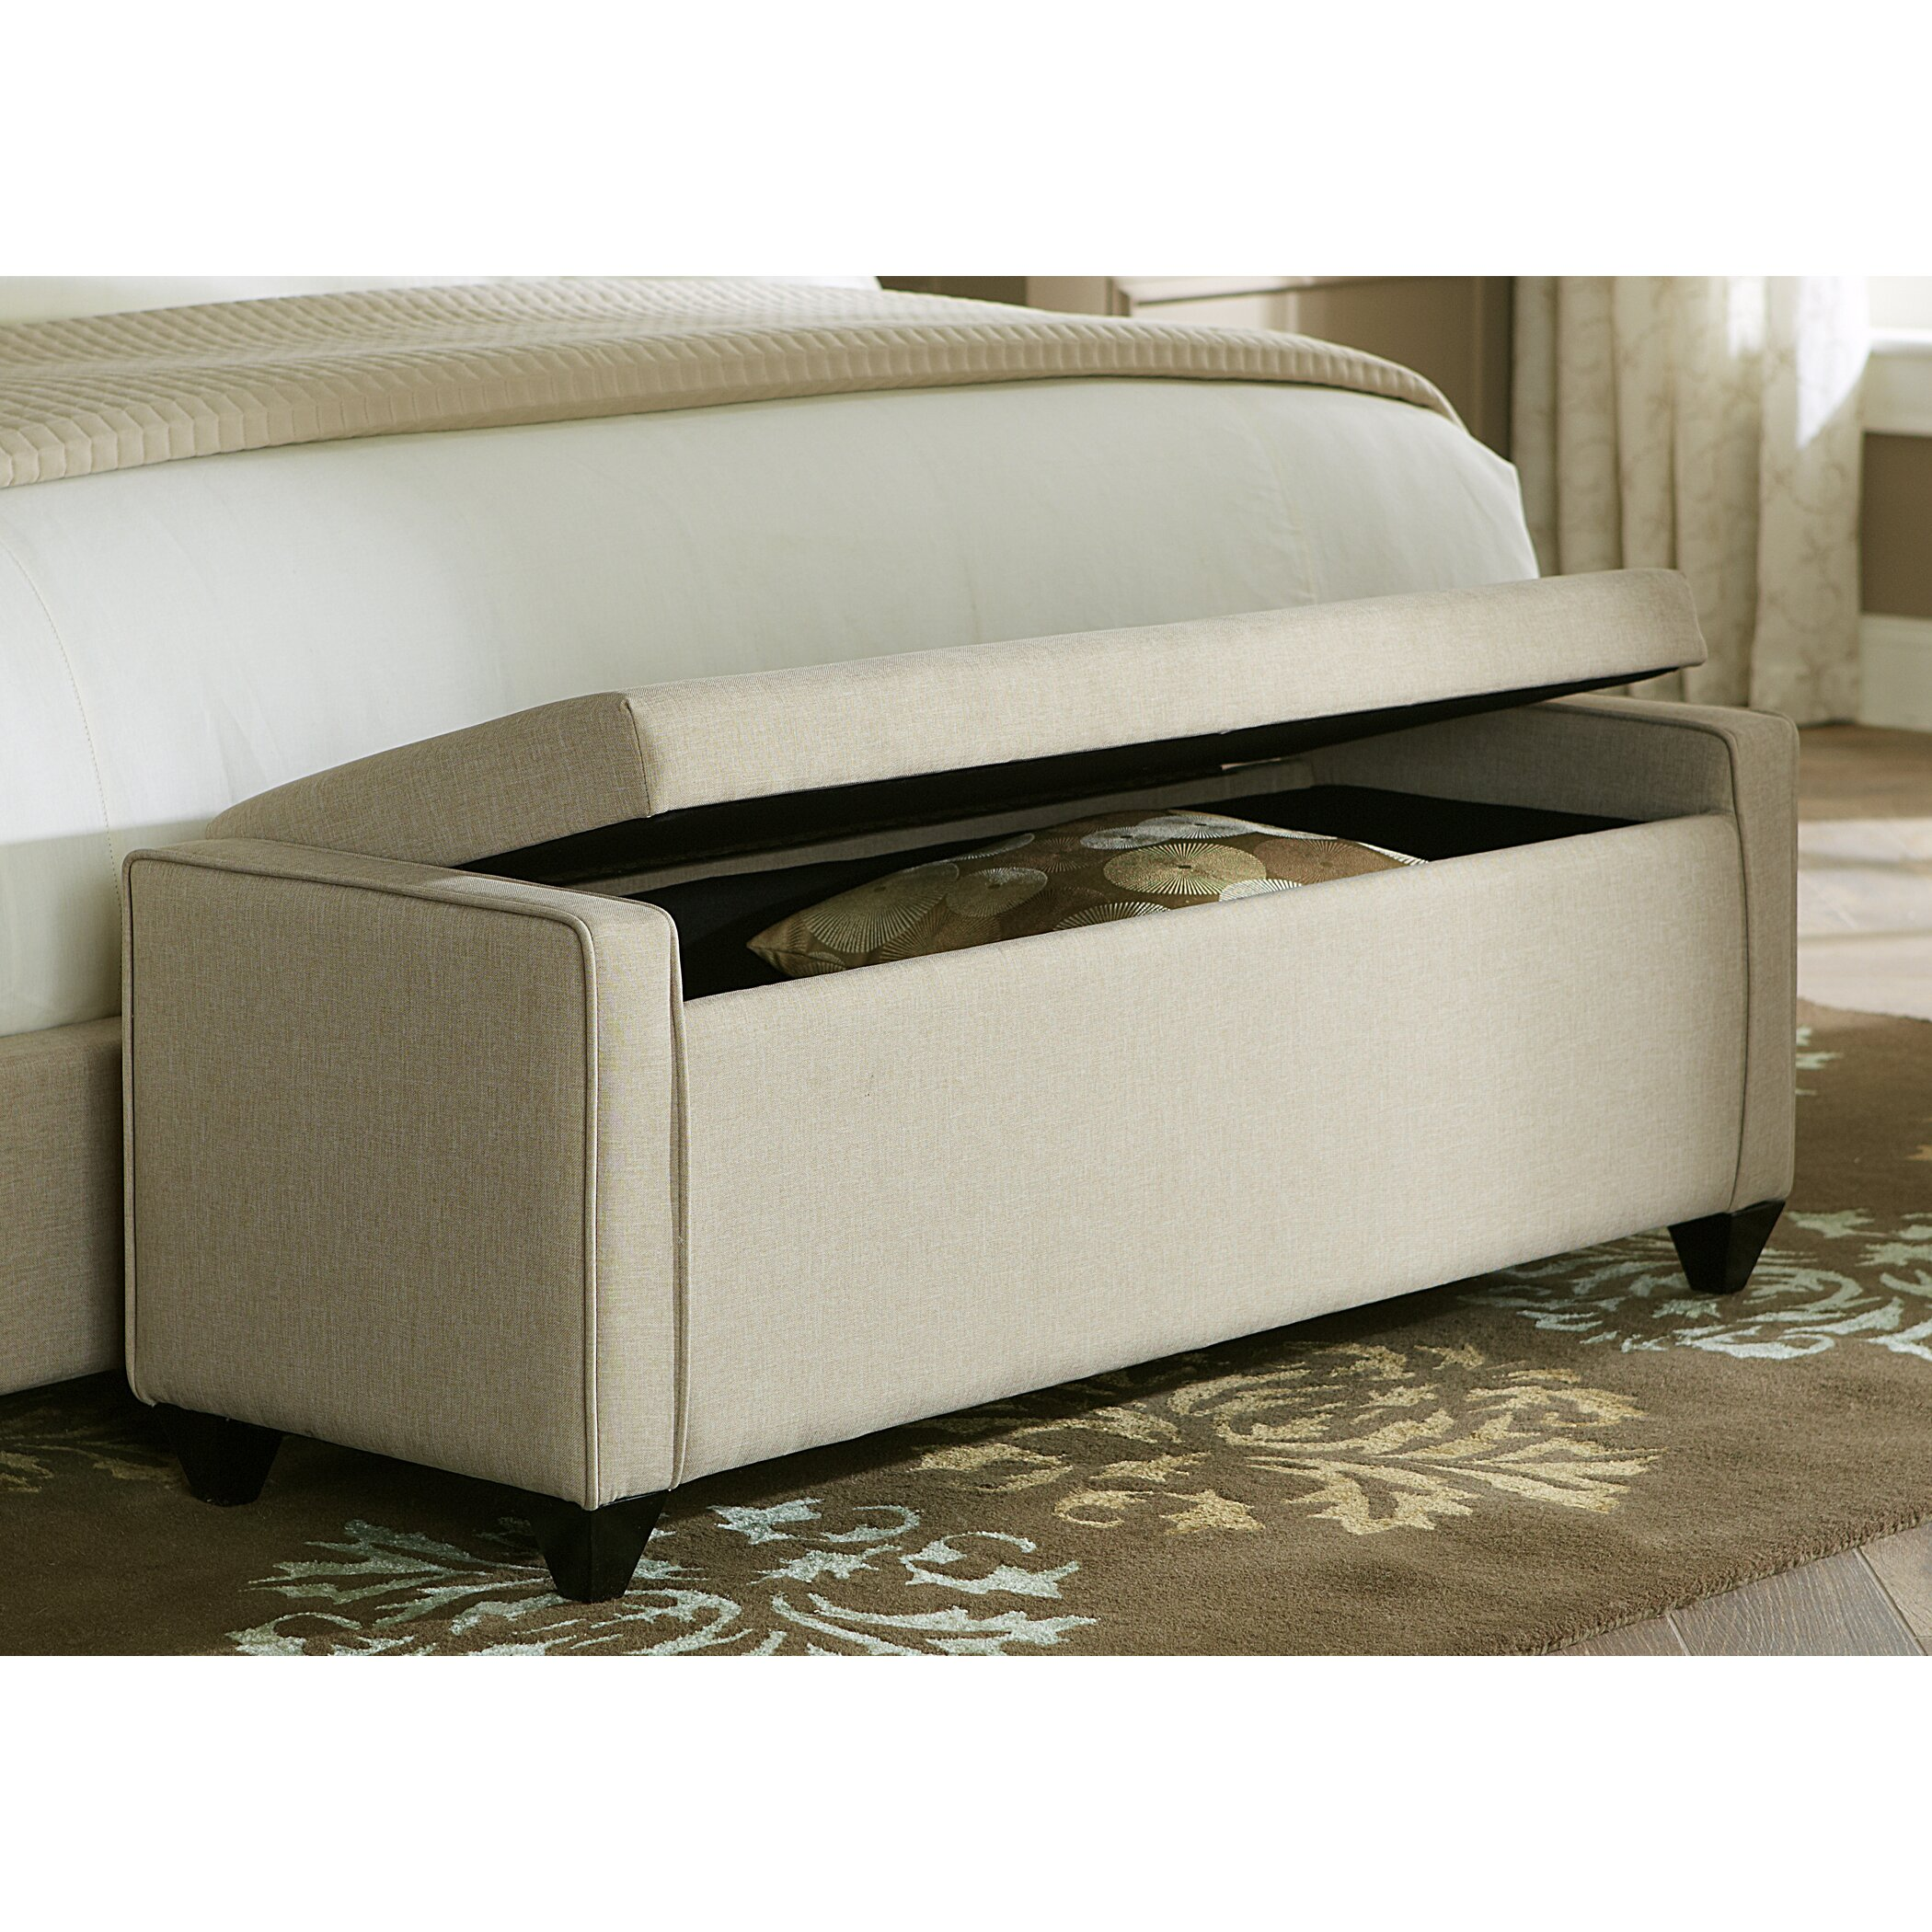 Liberty Furniture Upholstered Storage Bedroom Bench 150 BR47